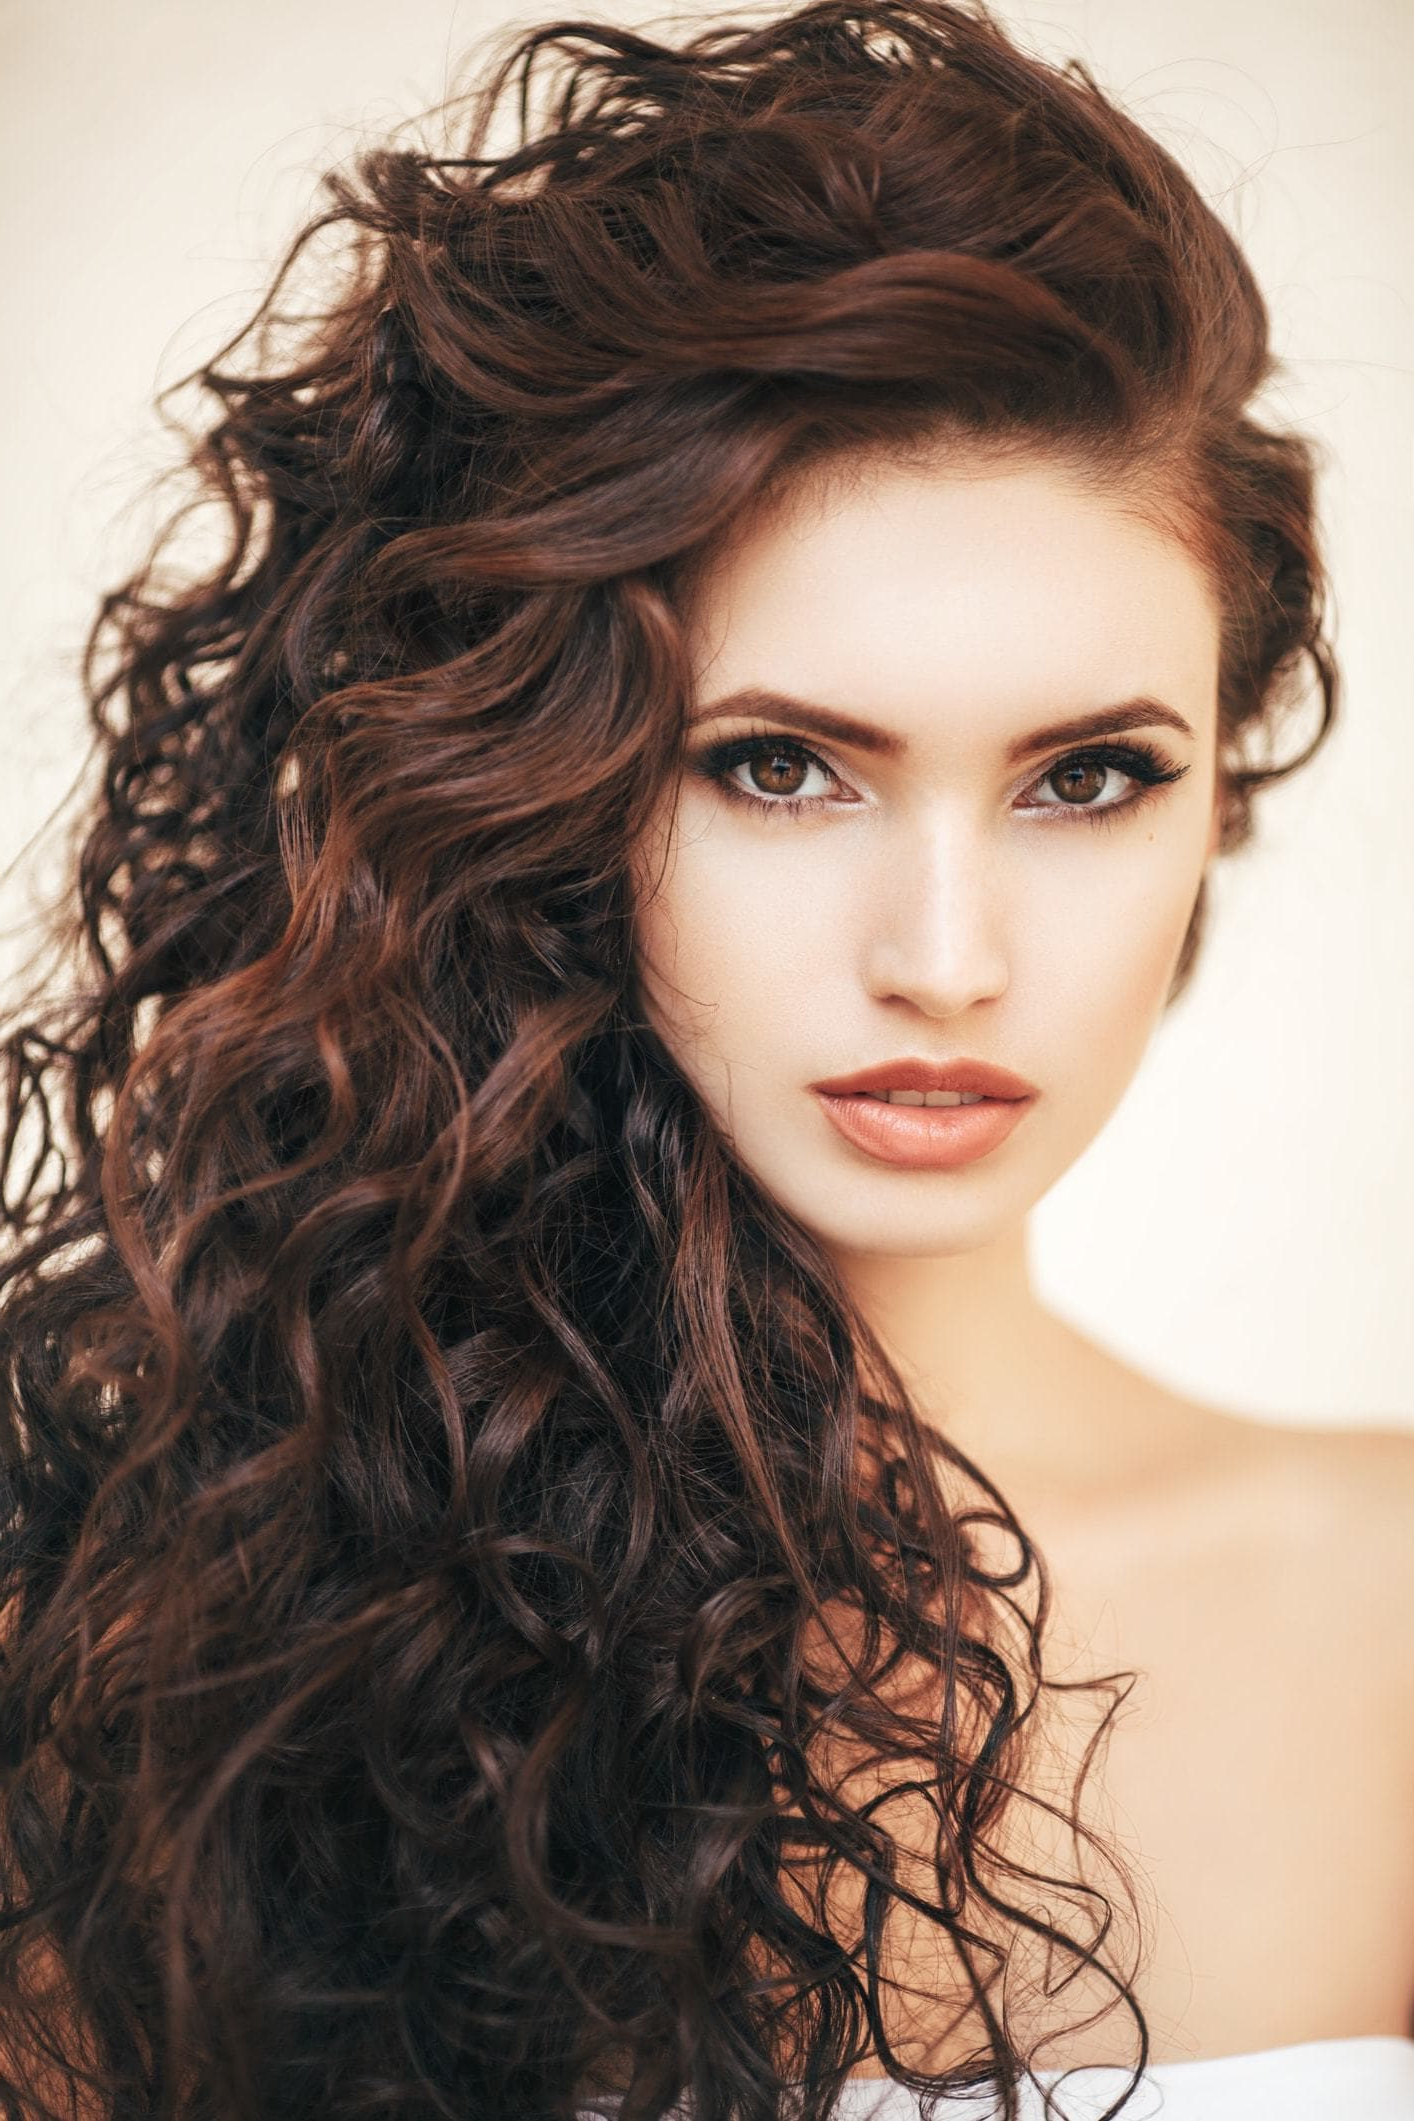 Trendy Long Tousled Voluminous Hairstyles In Curly Hairstyles For Long Hair: 19 Kinds Of Curls To Consider (View 15 of 20)